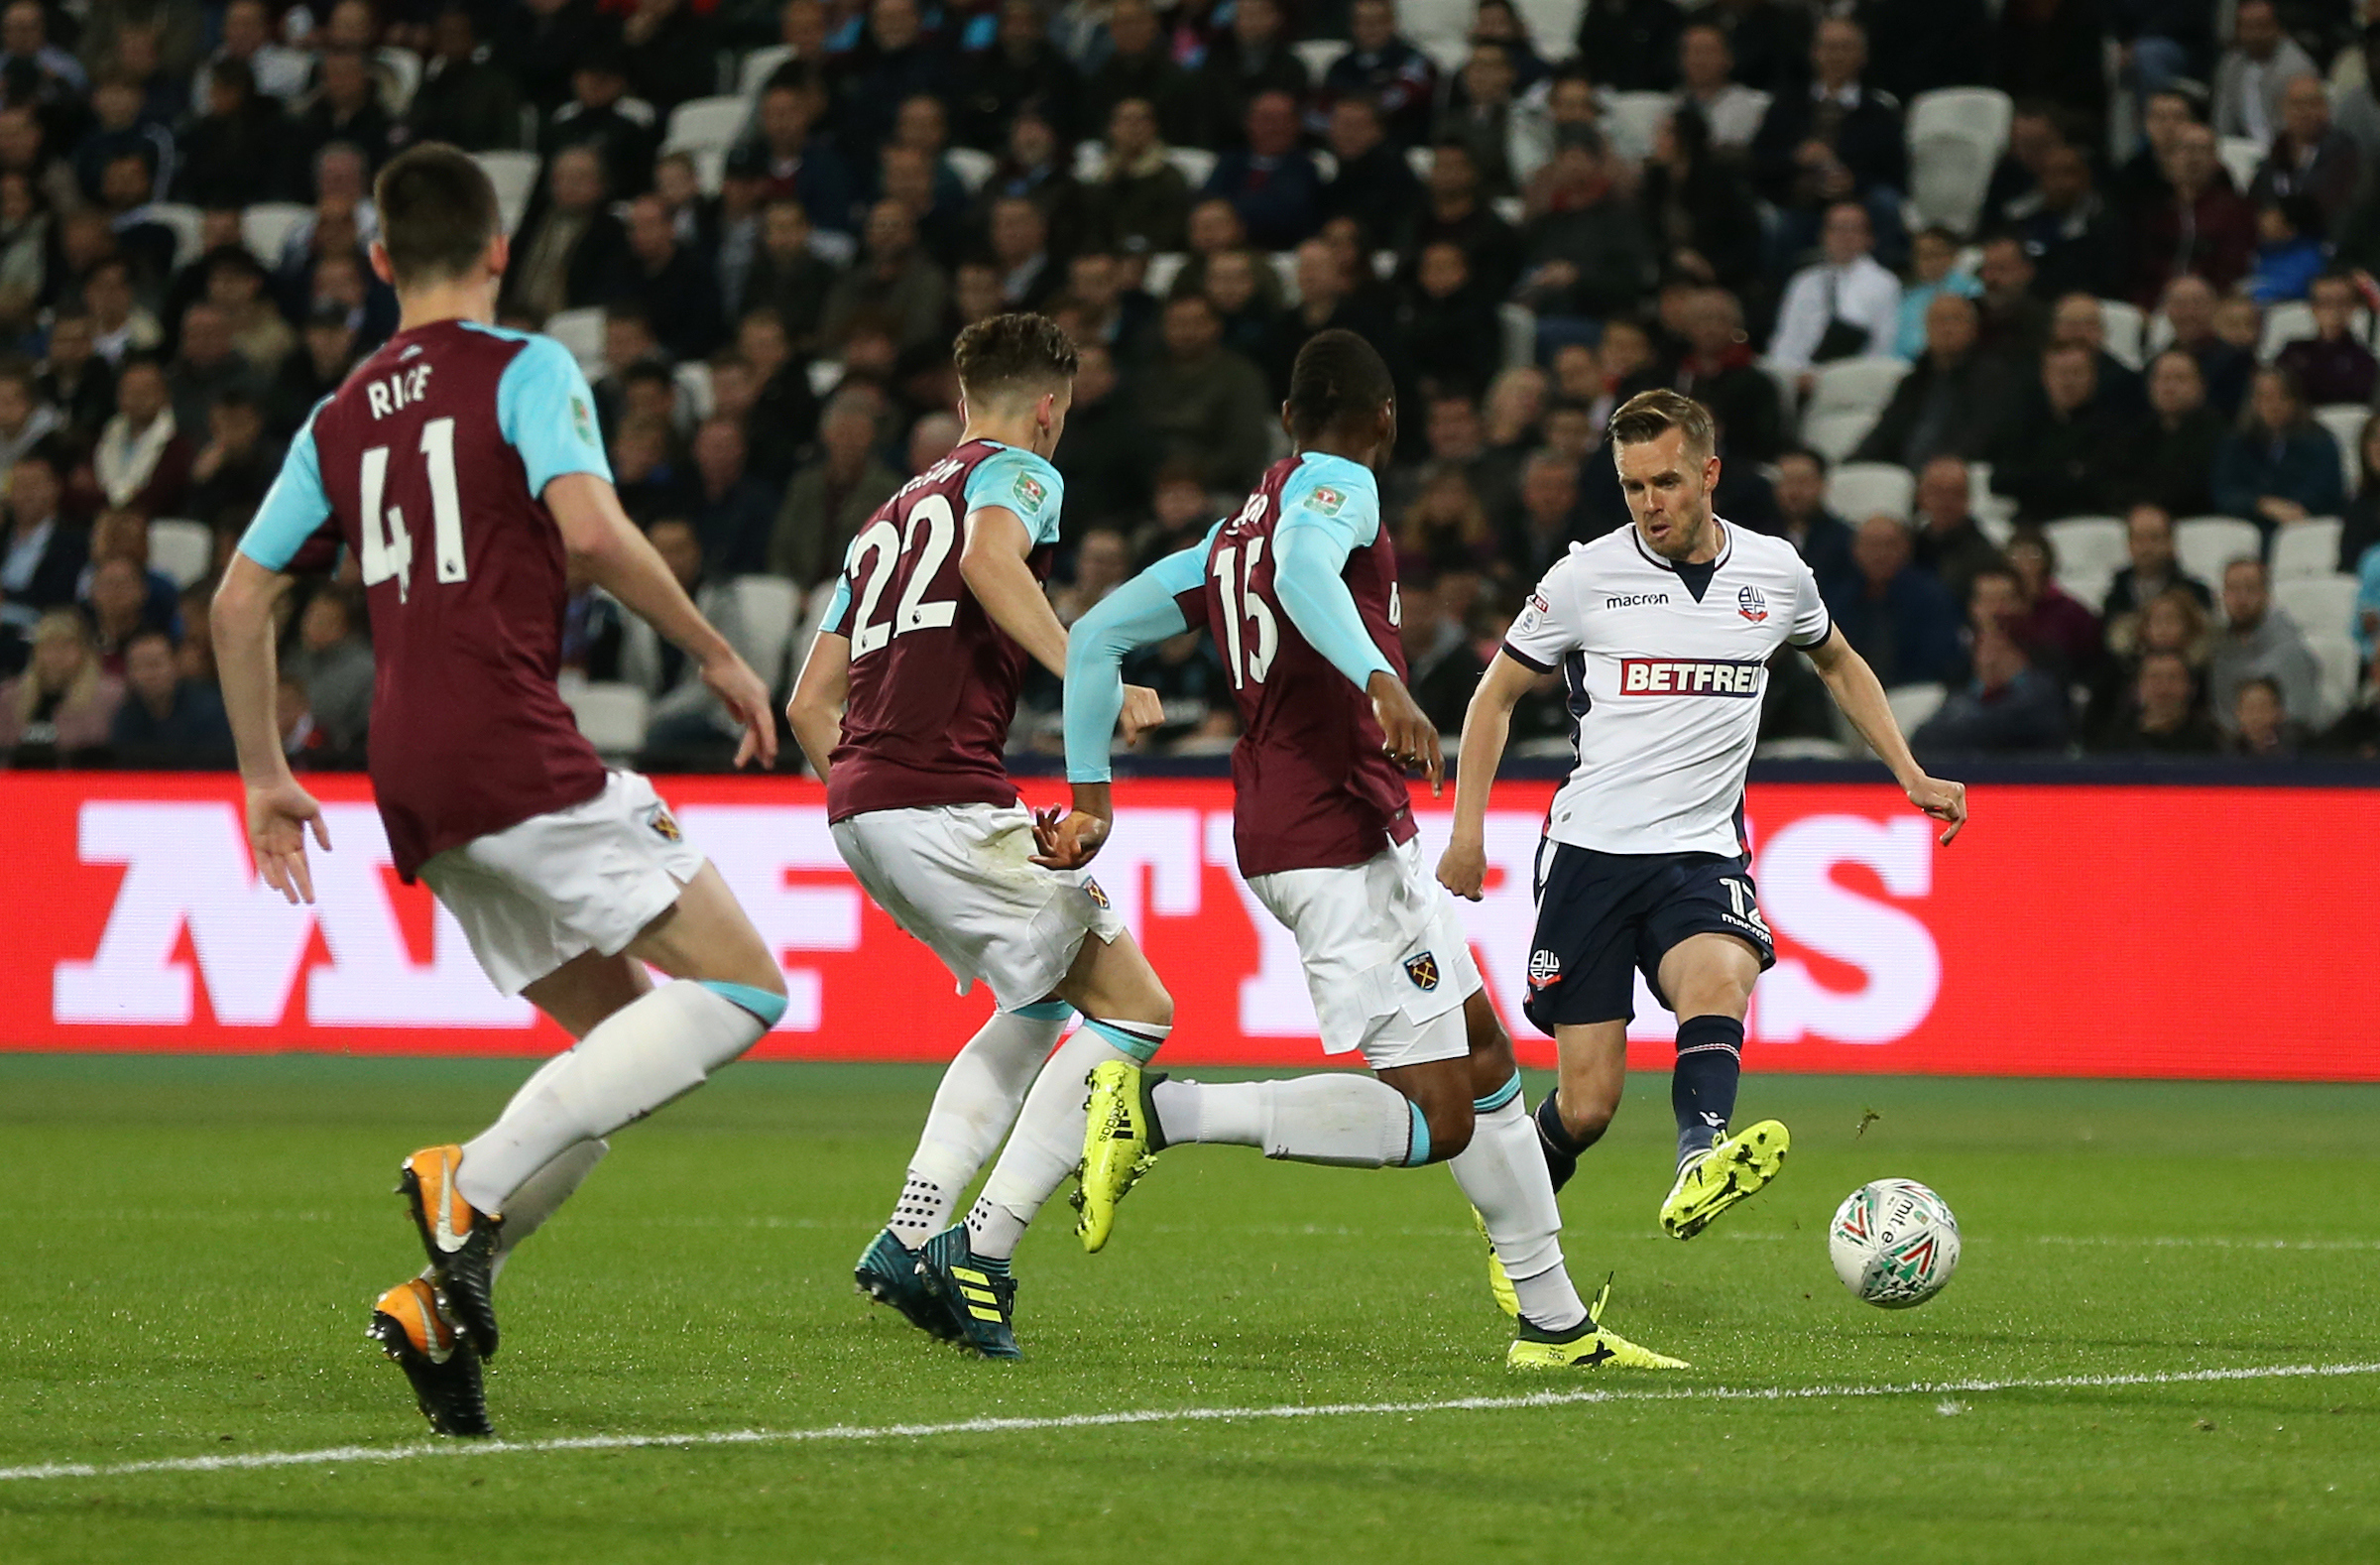 Wanderers found it tough going against West Ham on Tuesday night at the London Stadium